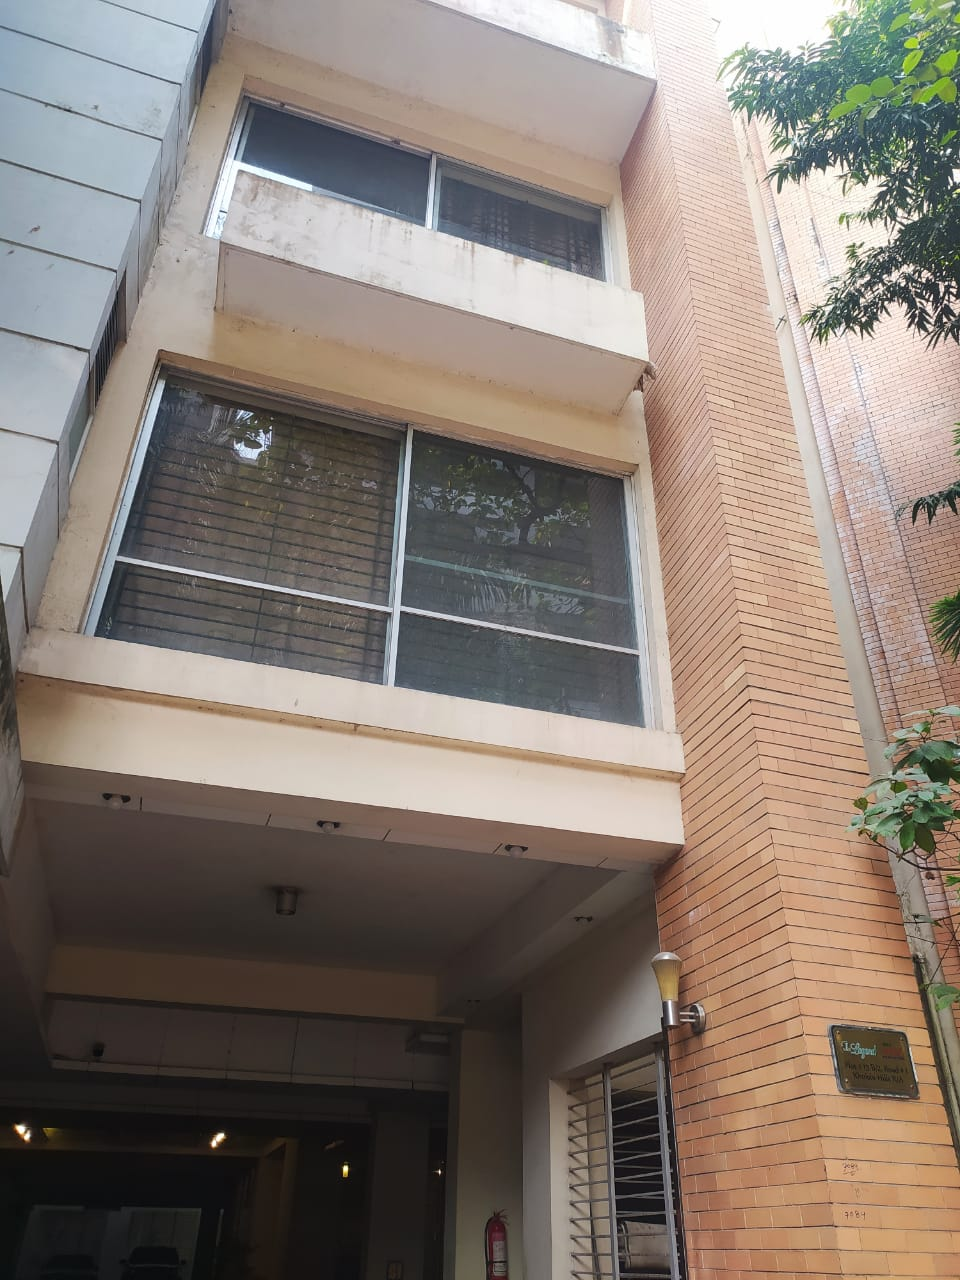 2495-sft-apartment-for-rent-in-north-khulshi-chittagong-5th-floor-086921